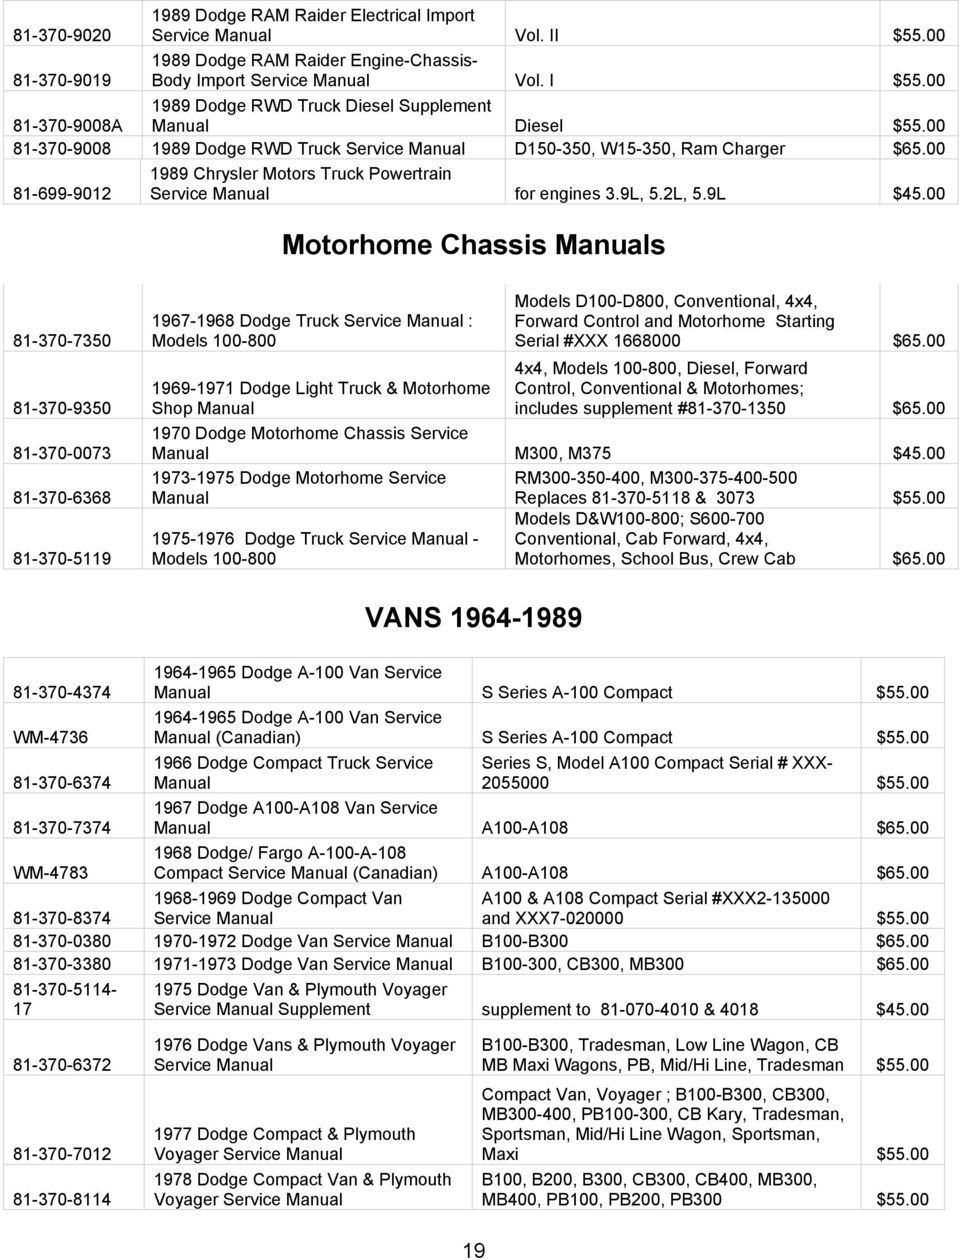 Mopar Manuals On Cd Rom Service And Master Parts Books 1968 Chrysler All Models Wiring Diagram E2 80 93 Automotive 00 81 699 9012 1989 Motors Truck Powertrain For Engines 39l